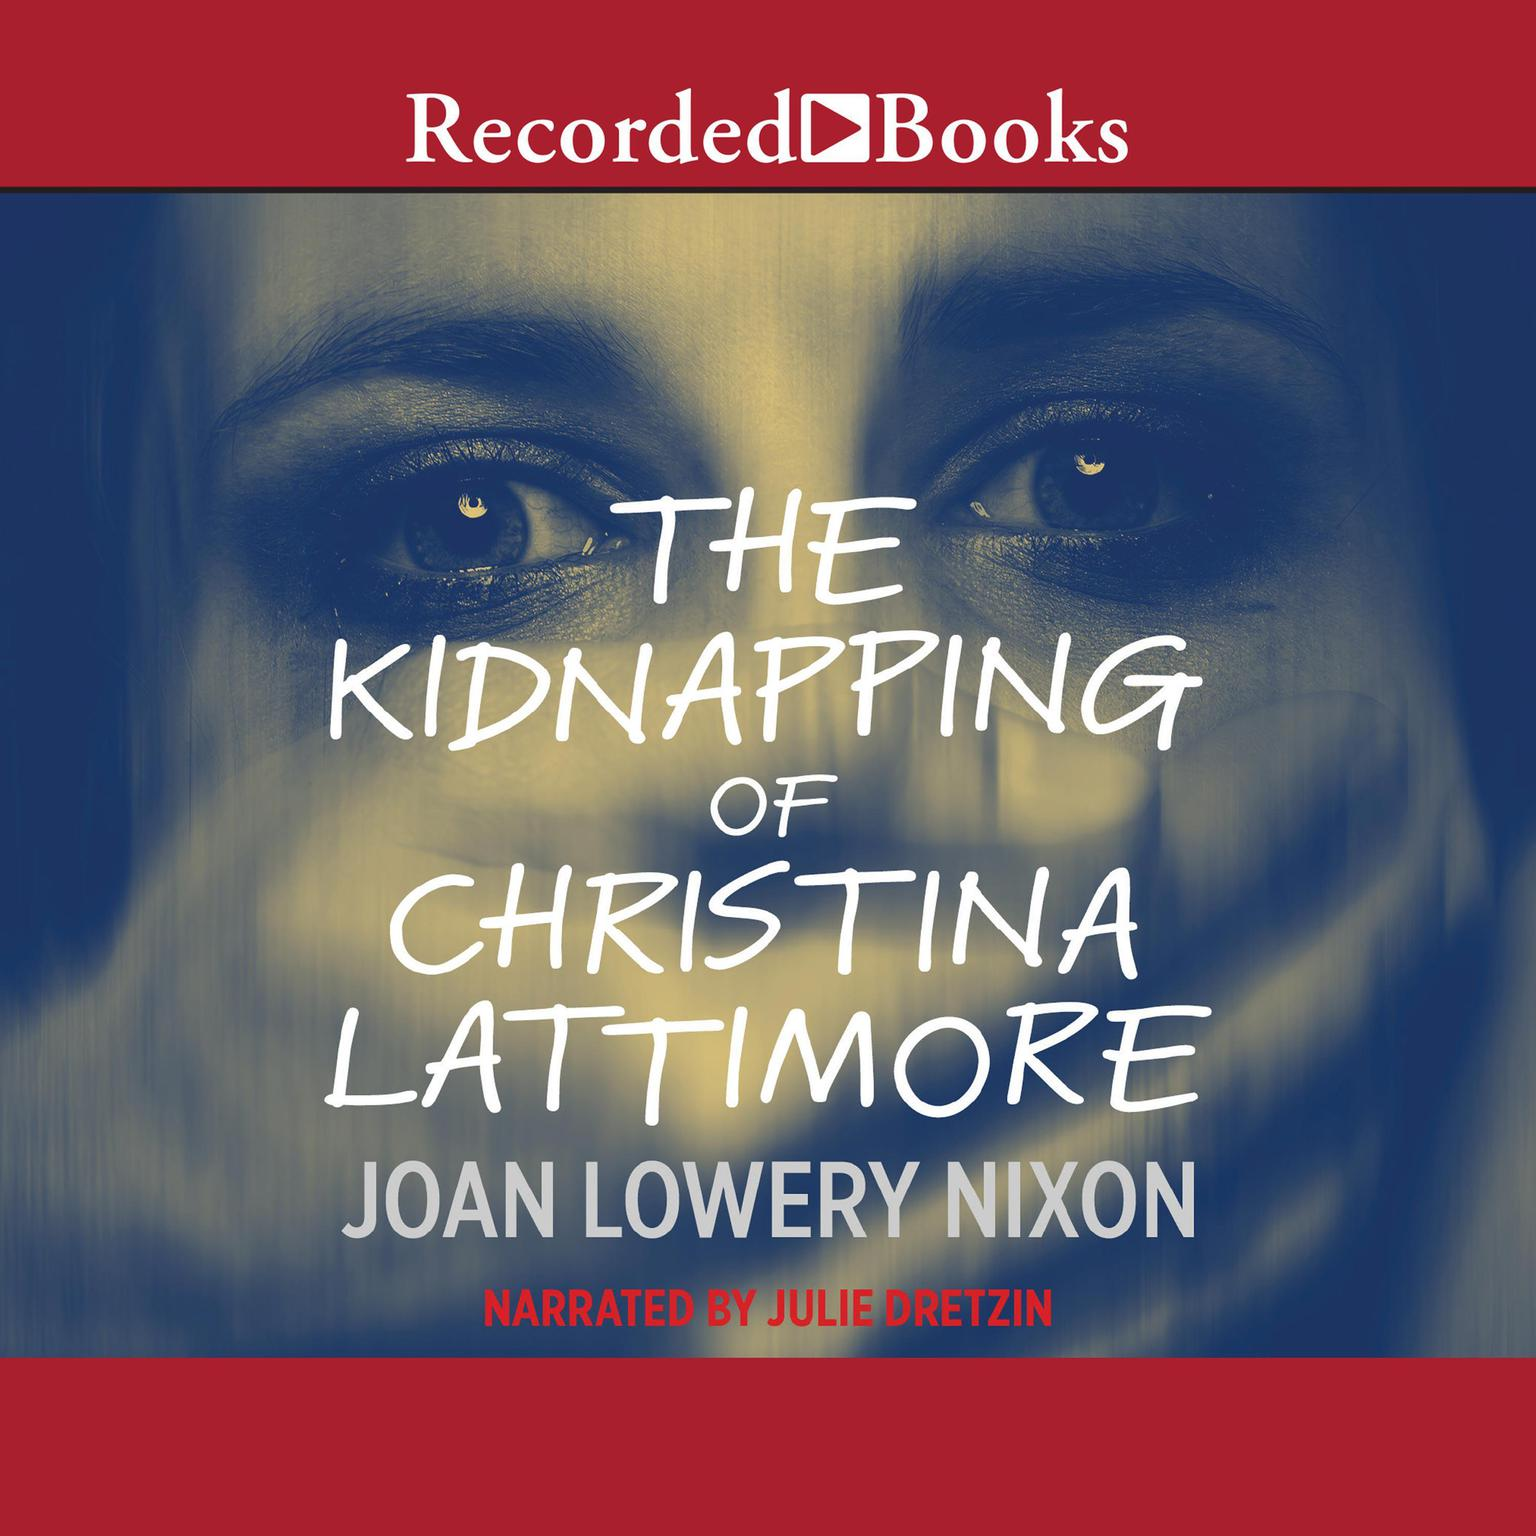 Printable The Kidnapping of Christina Lattimore Audiobook Cover Art